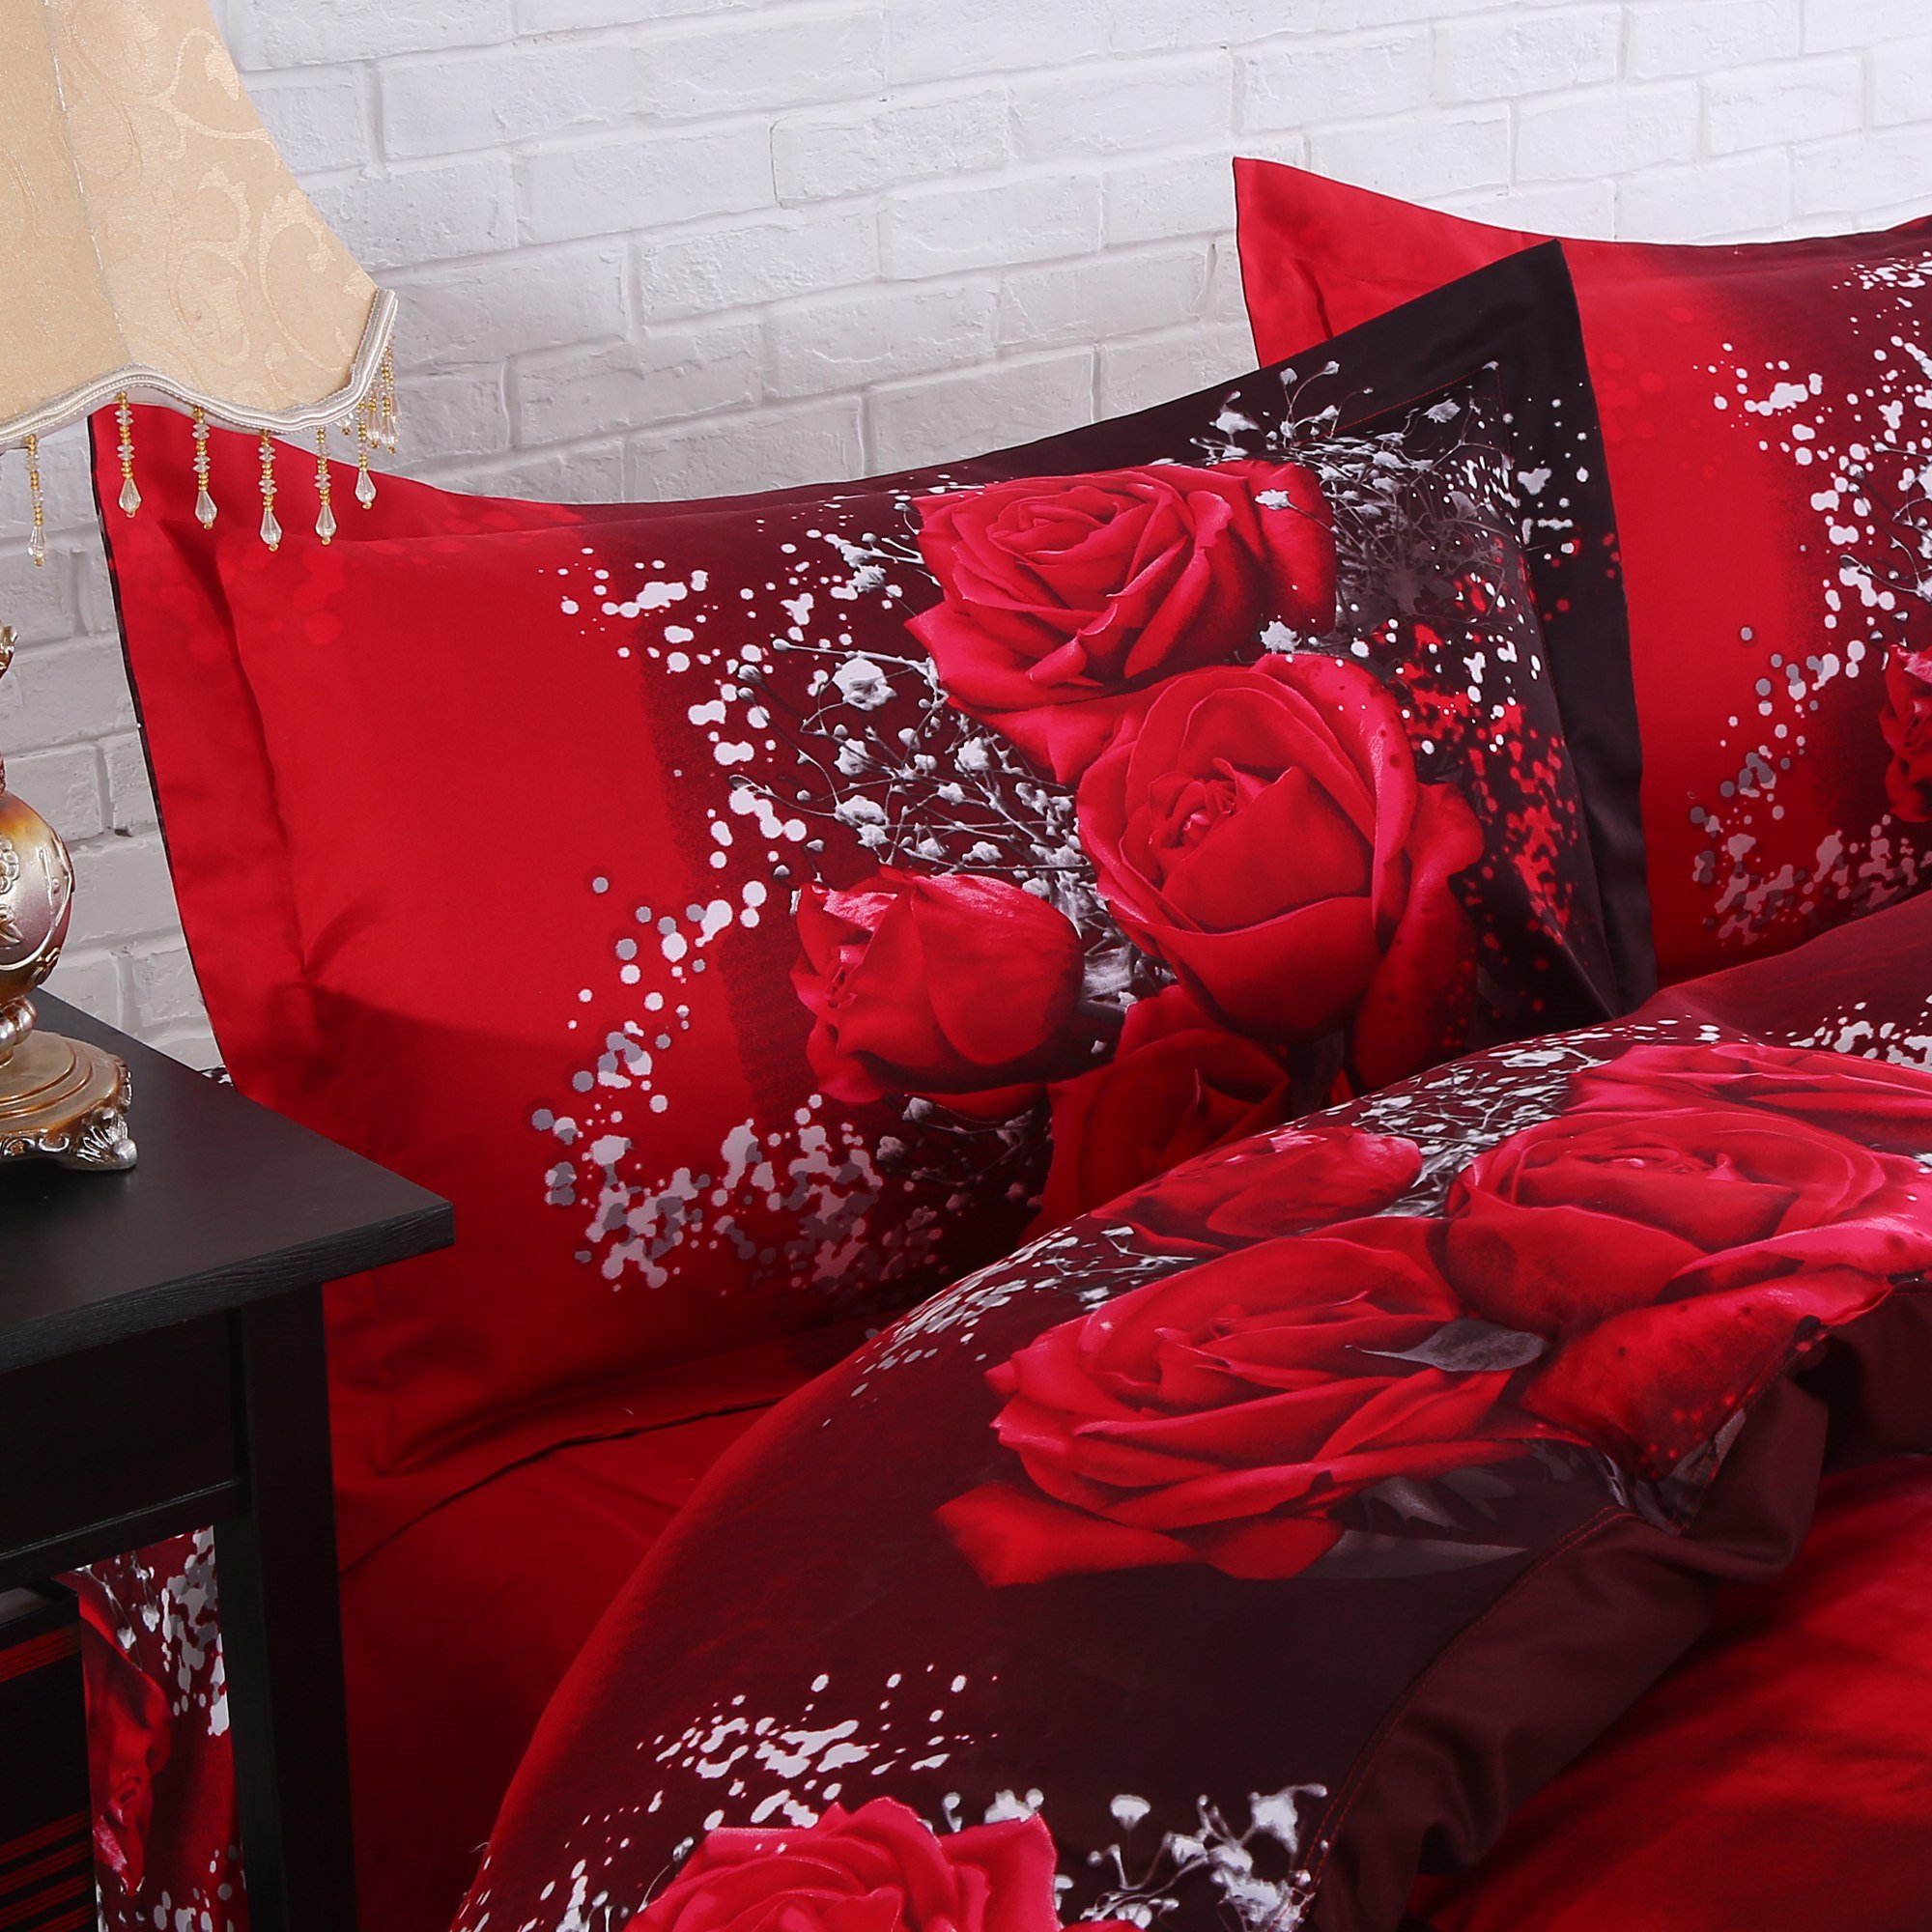 3D Red Rose Printing Cotton Luxury 4 Piece Bedding Sets